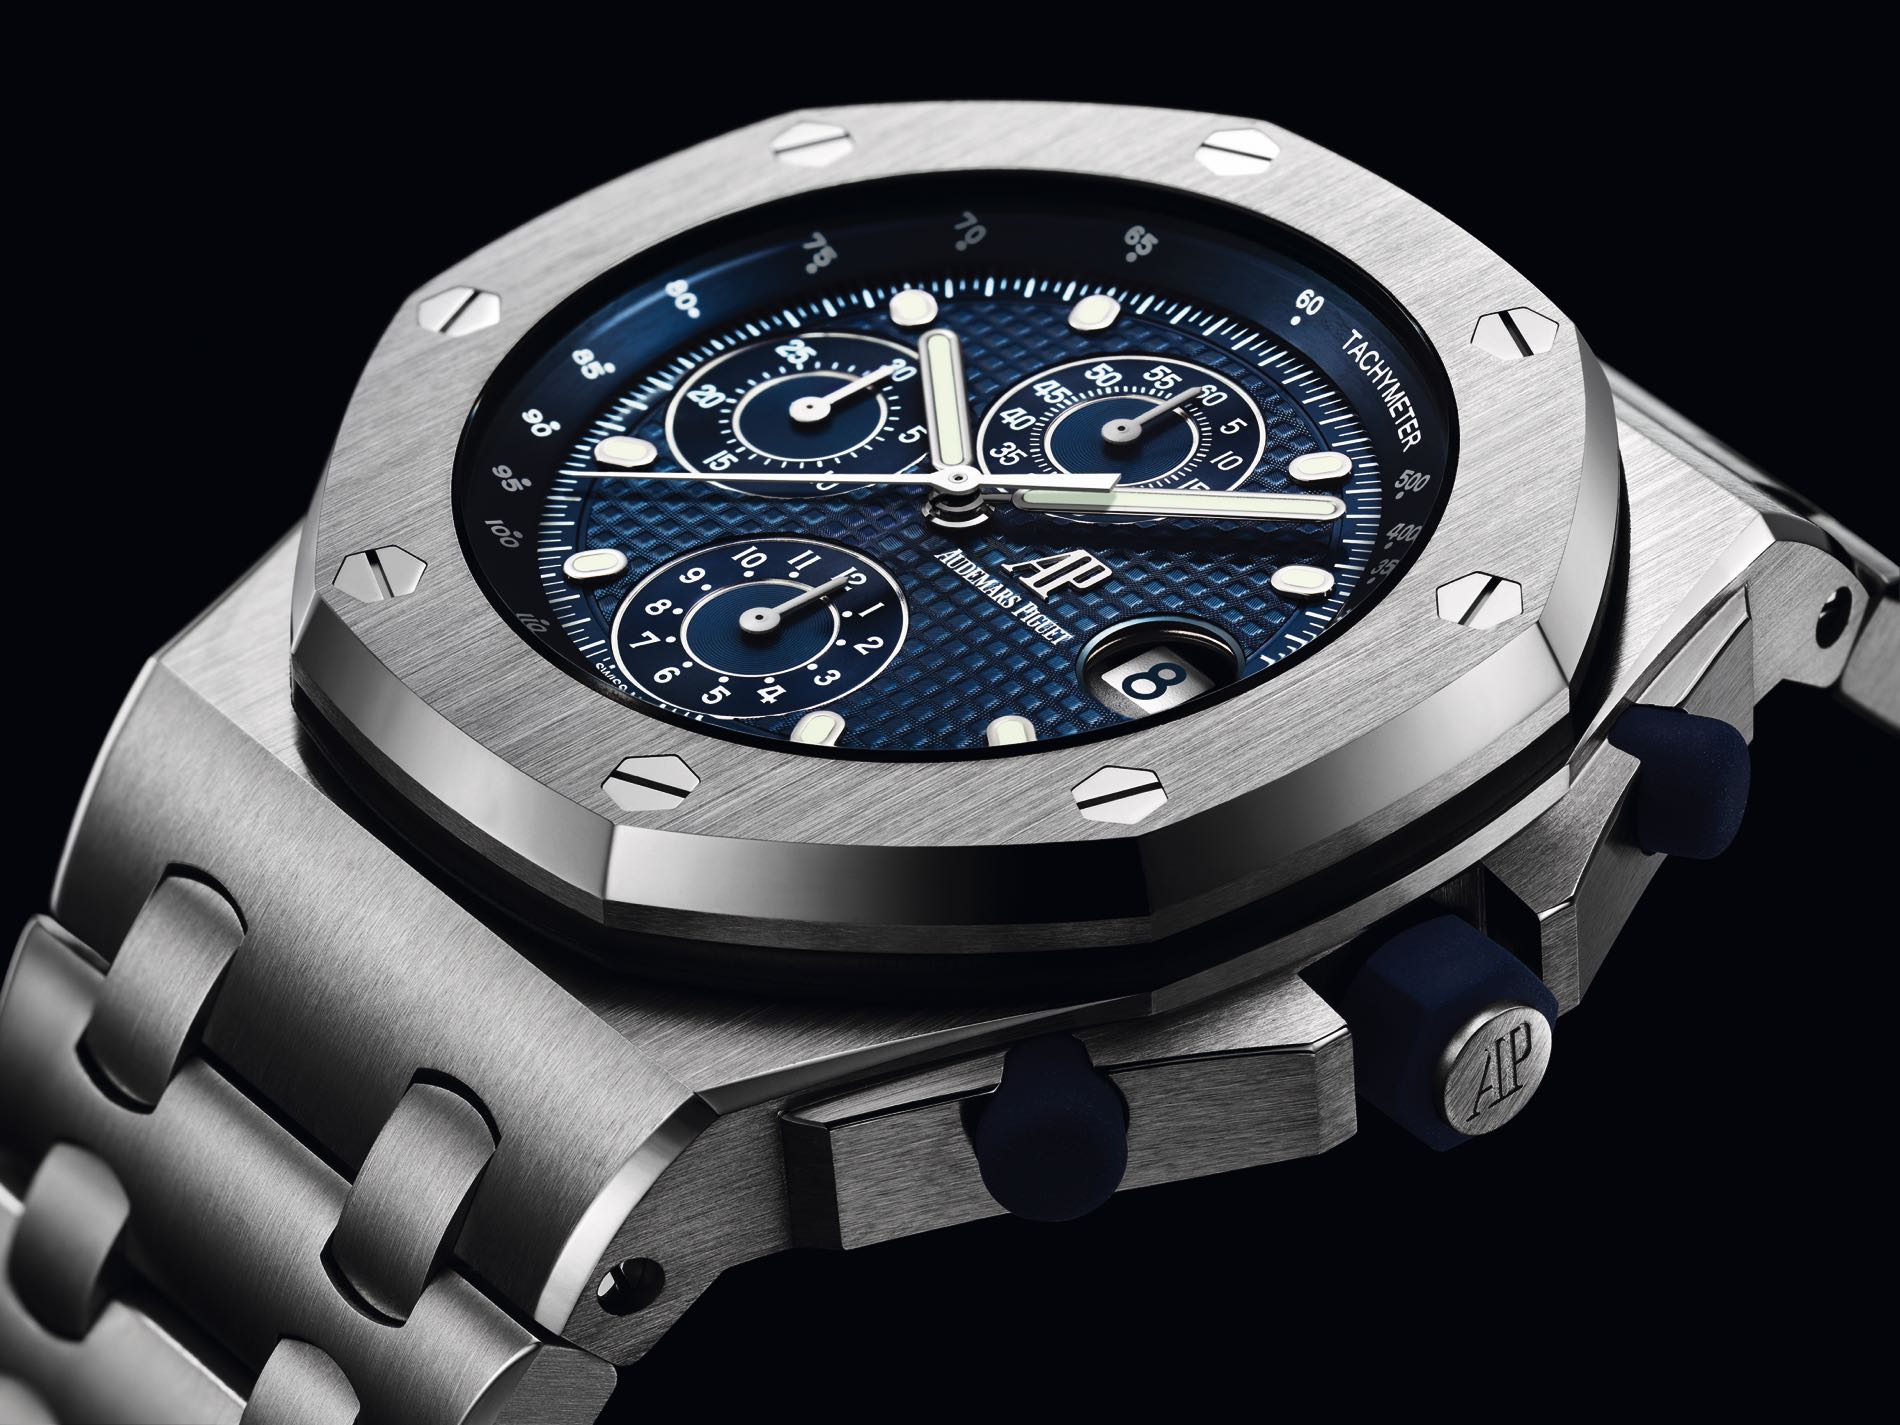 ea12f470fe61 On LeBron s wrist in this video is the 2018 re-edition of the original  Royal Oak Offshore timepiece